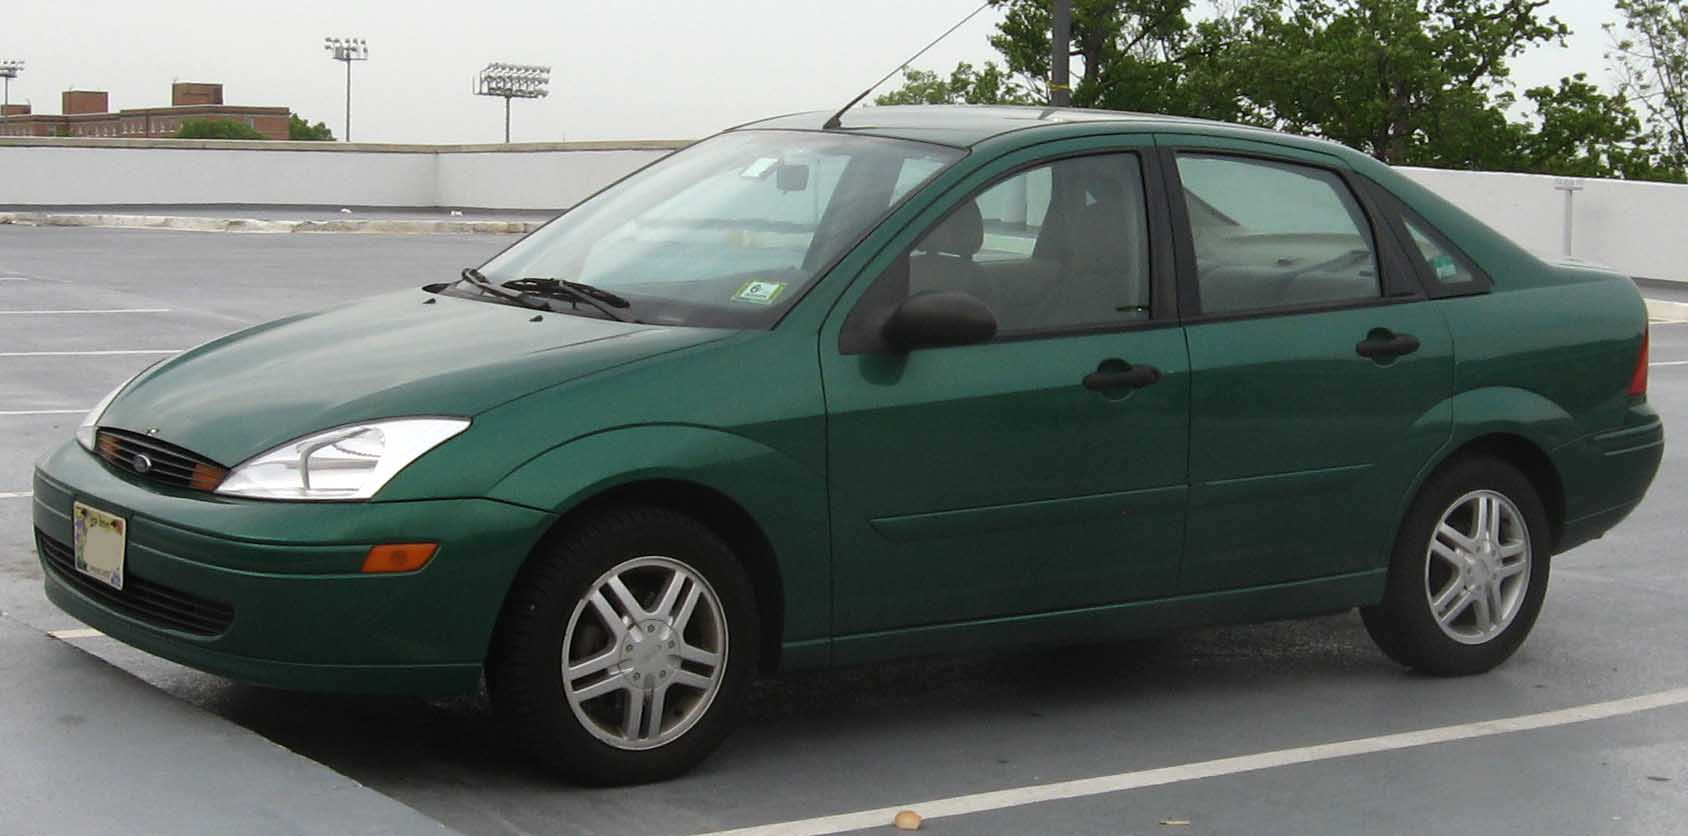 2000 ford focus image 2